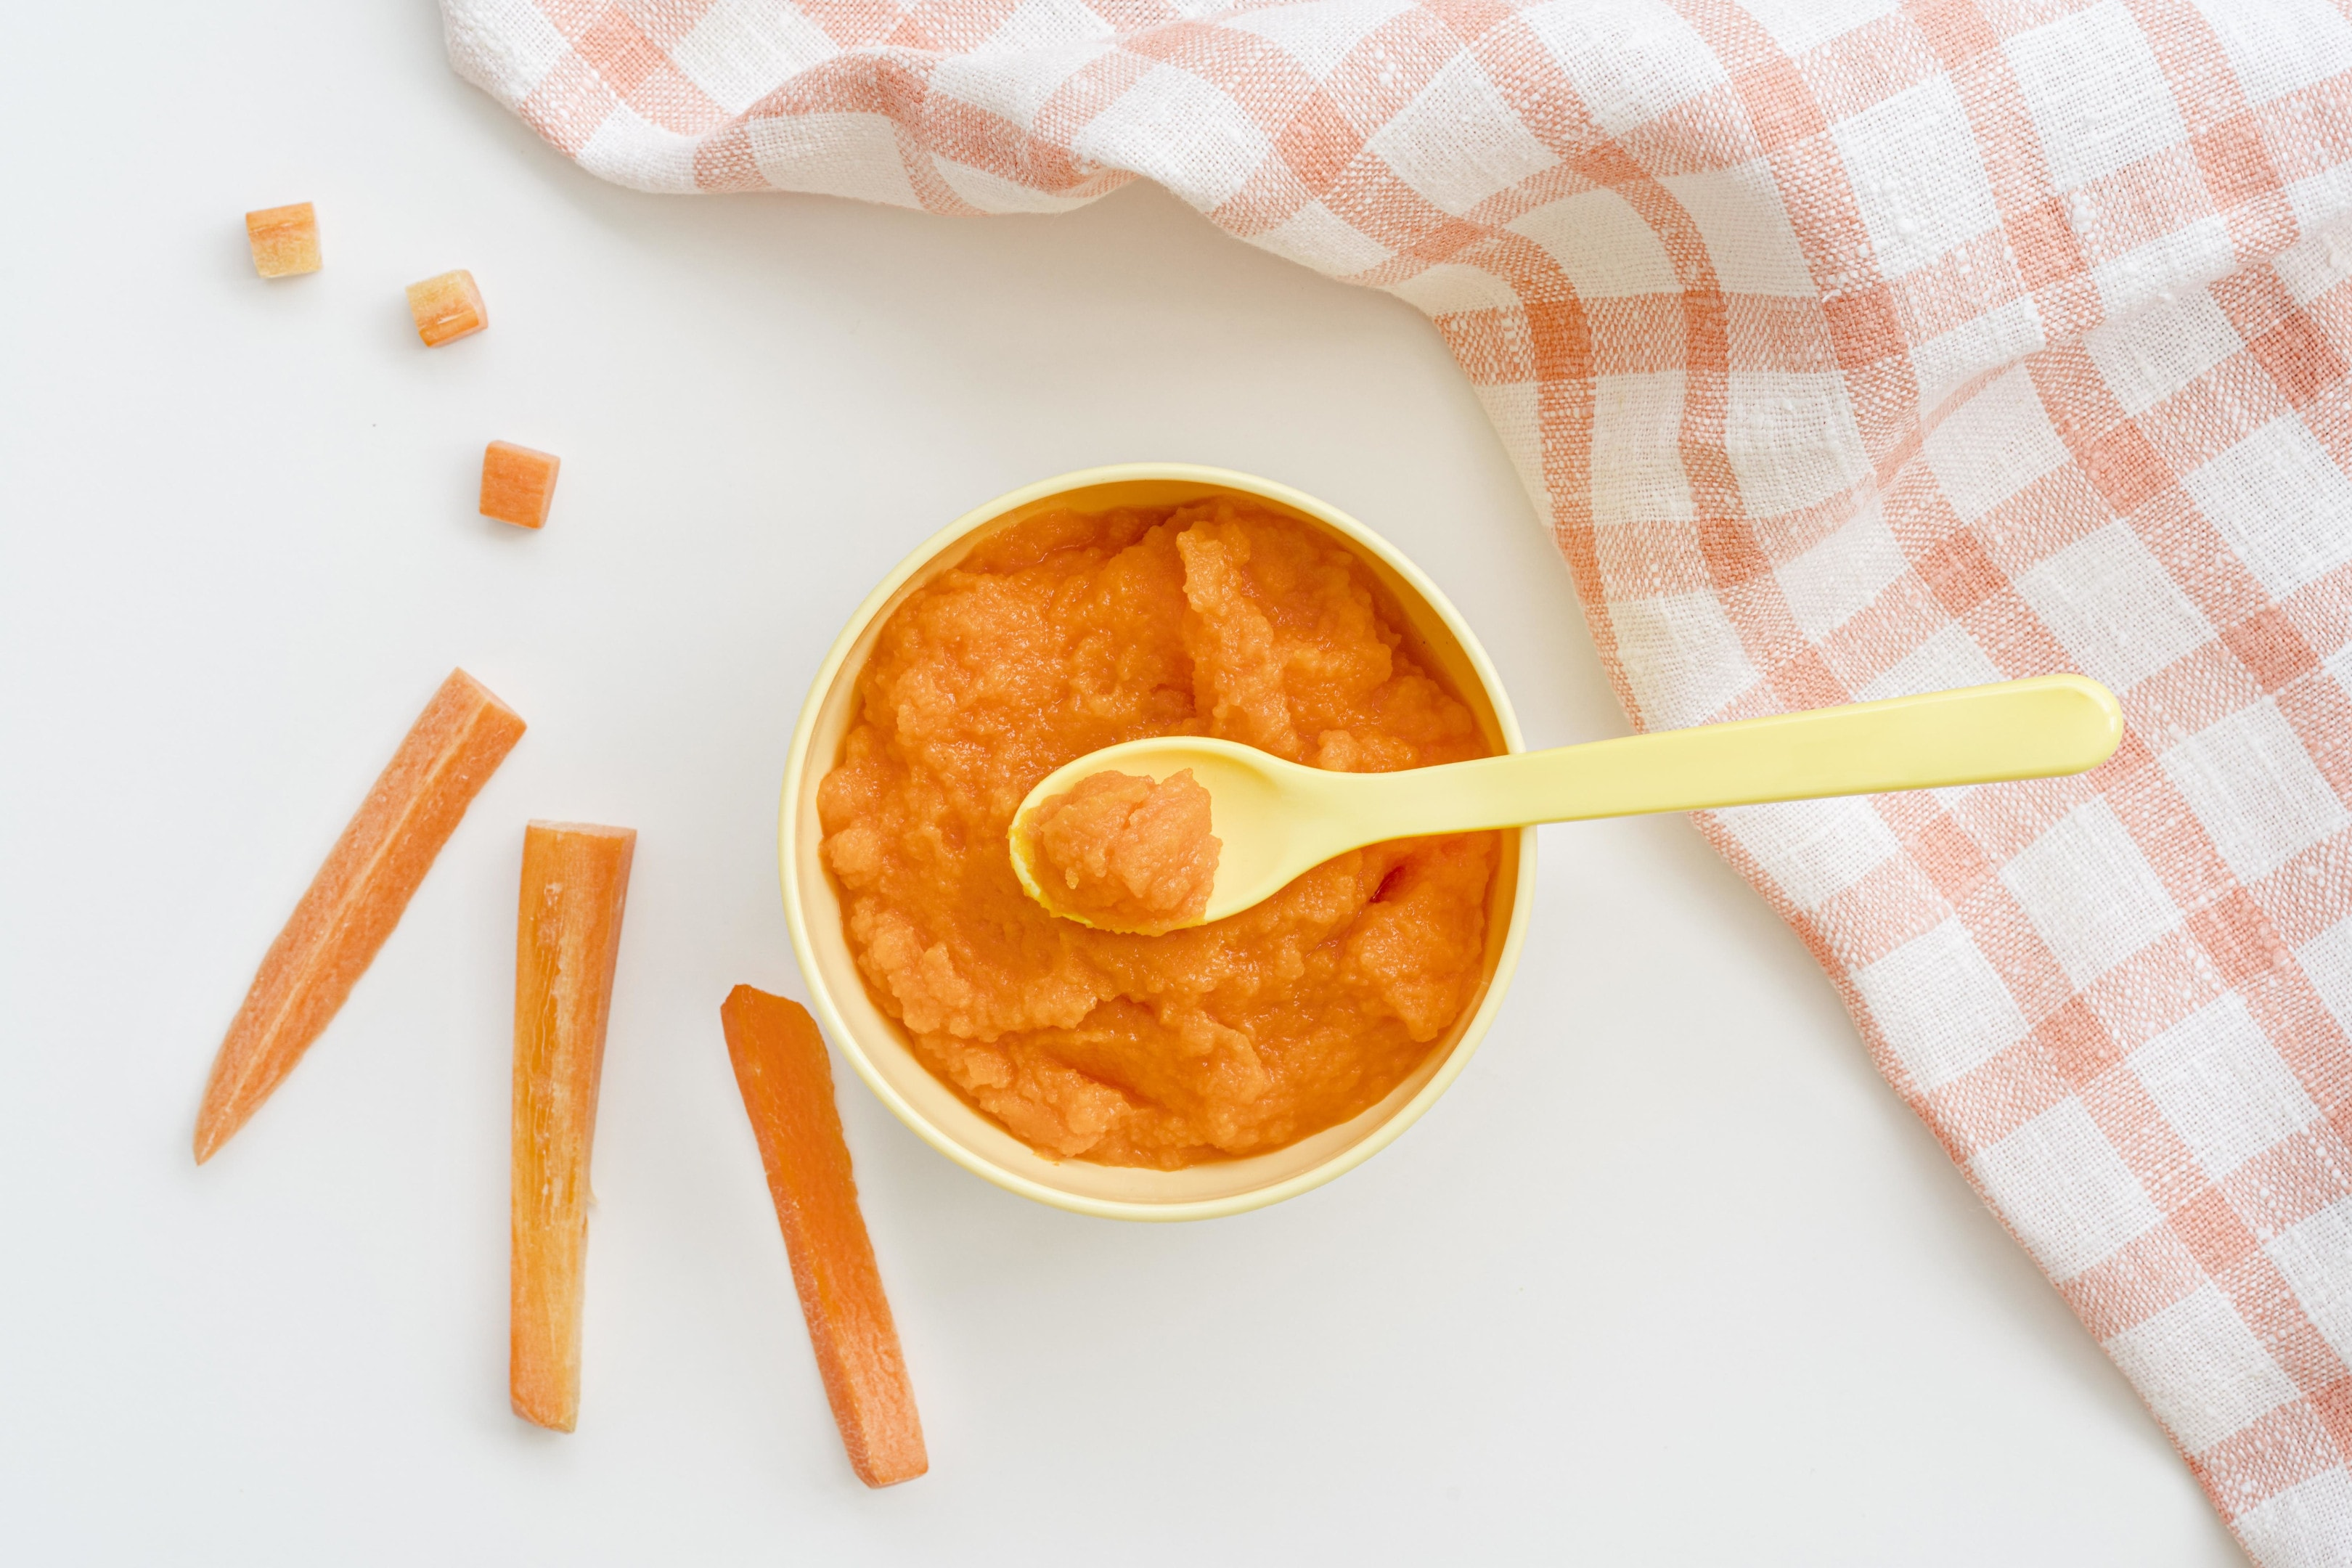 Bowl with carrot puree